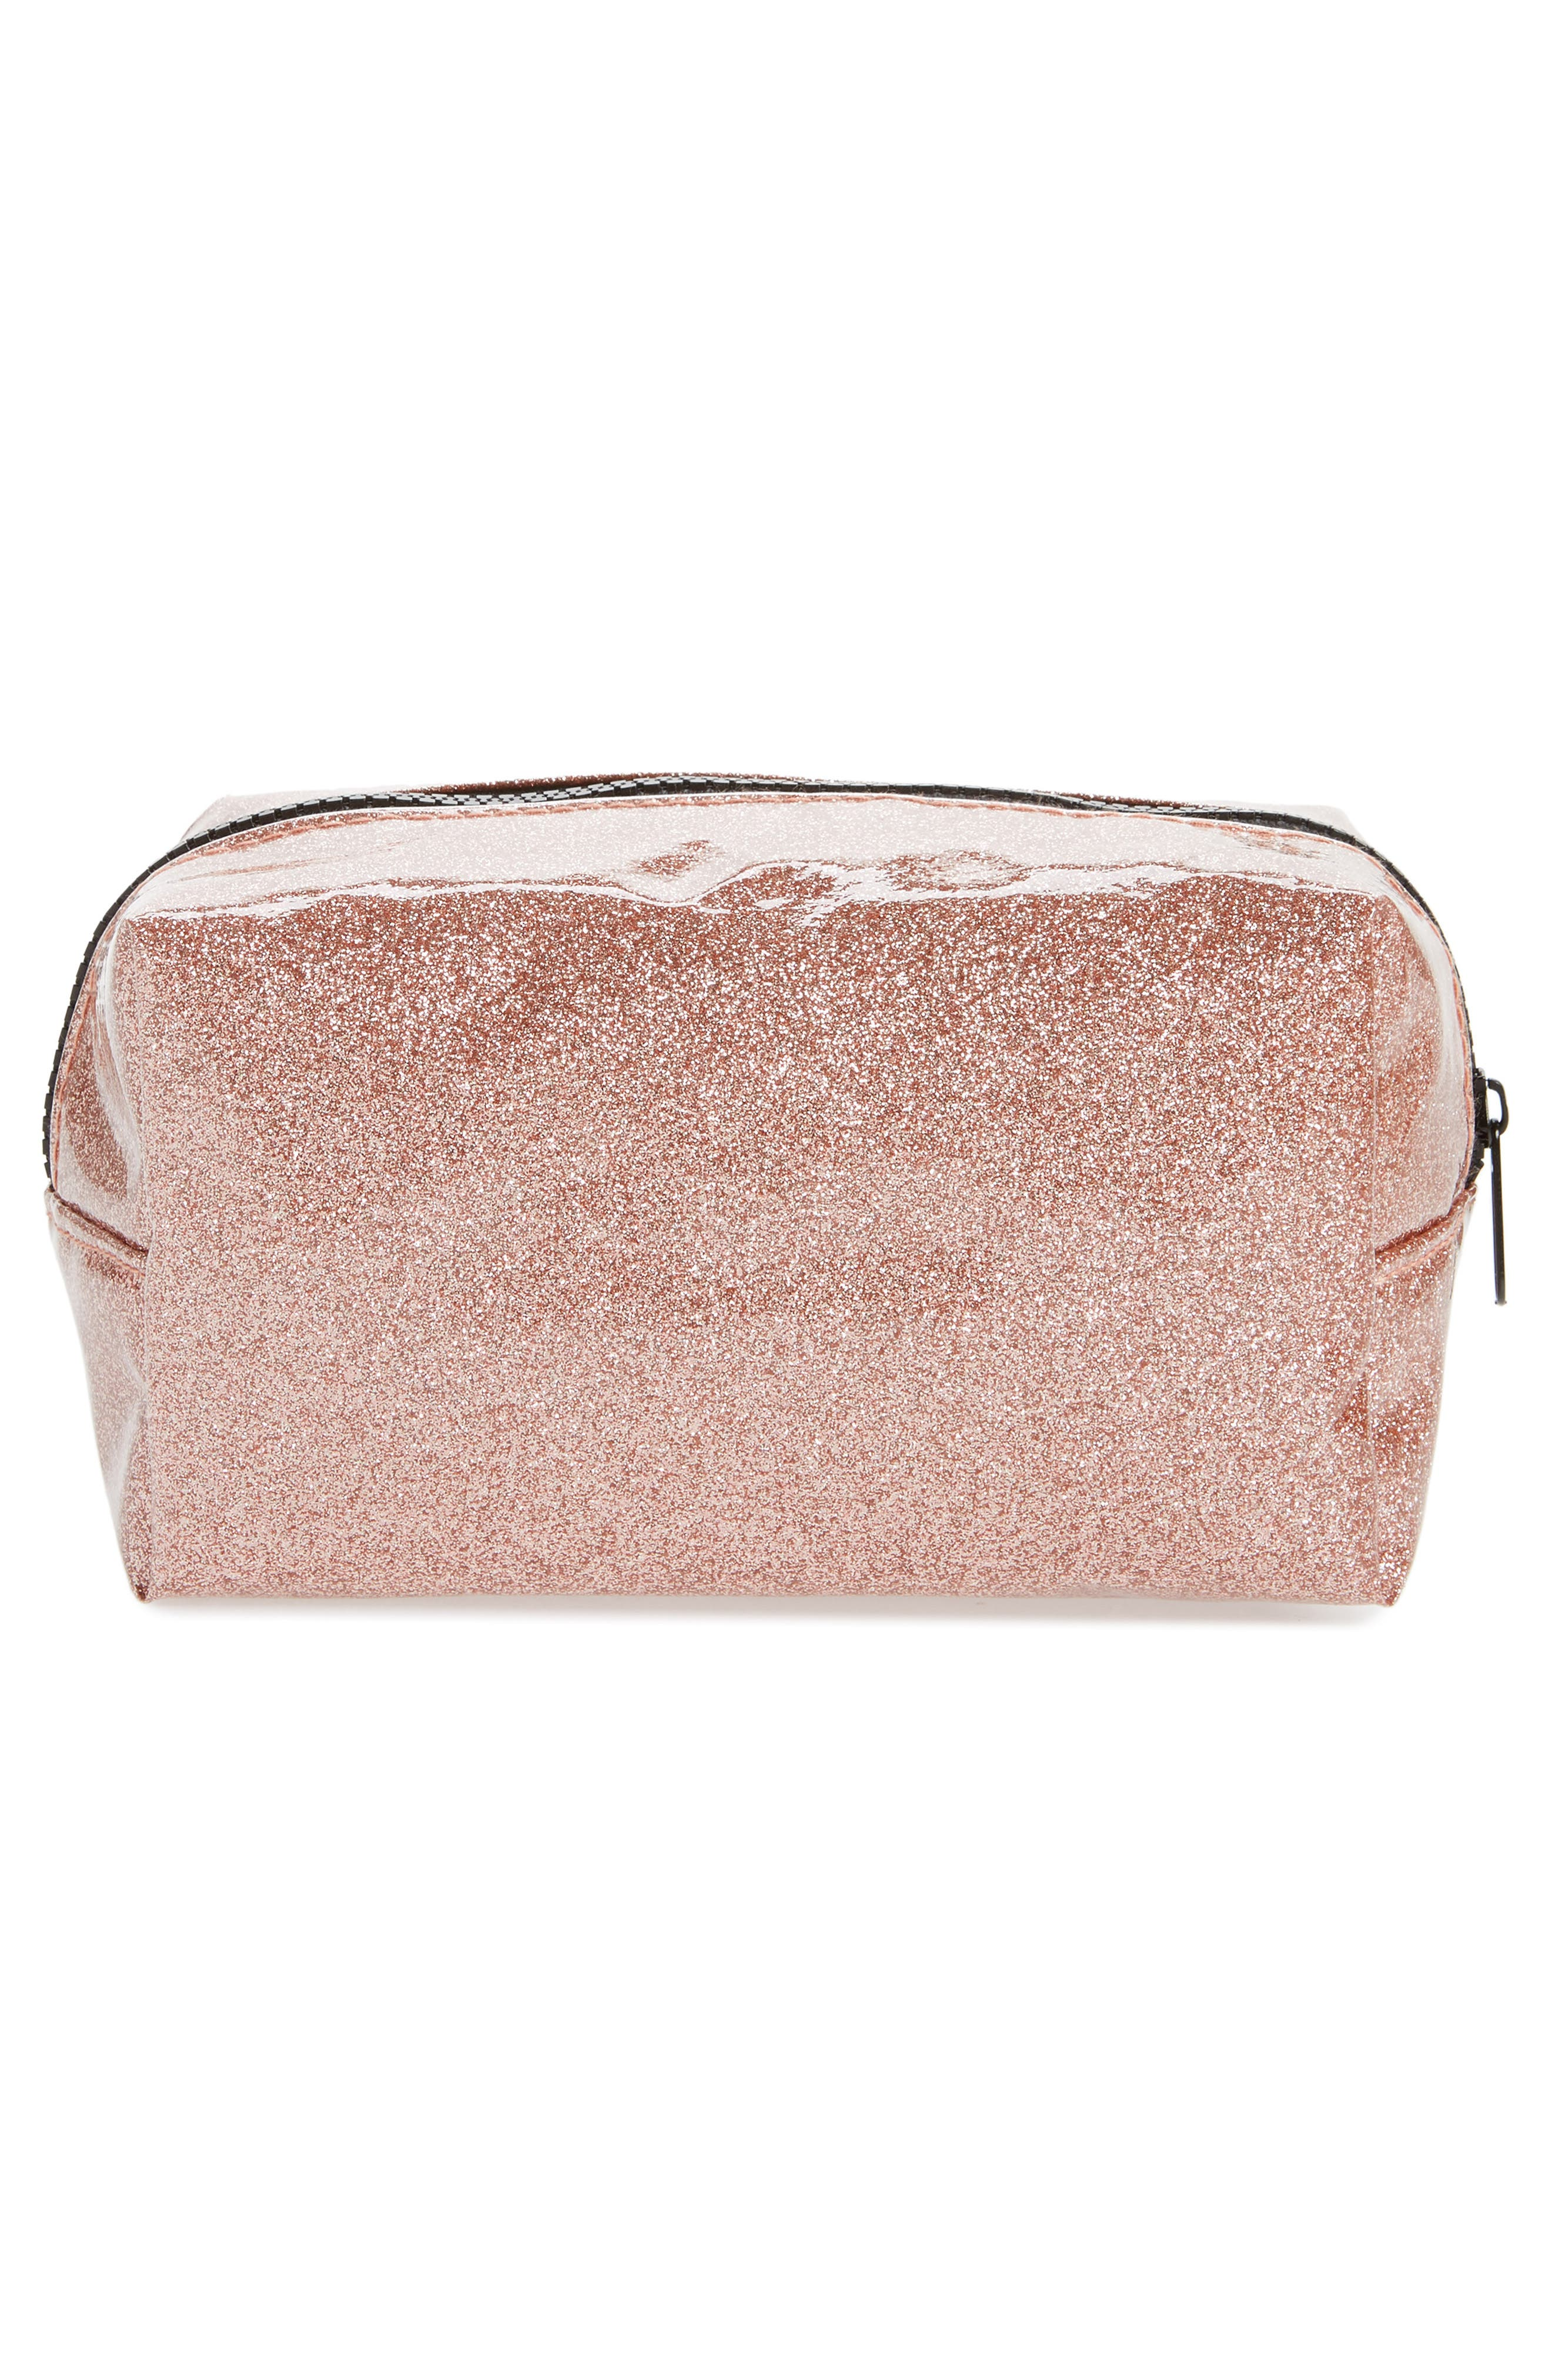 Cosmetics Case,                             Alternate thumbnail 2, color,                             ROSE GOLD